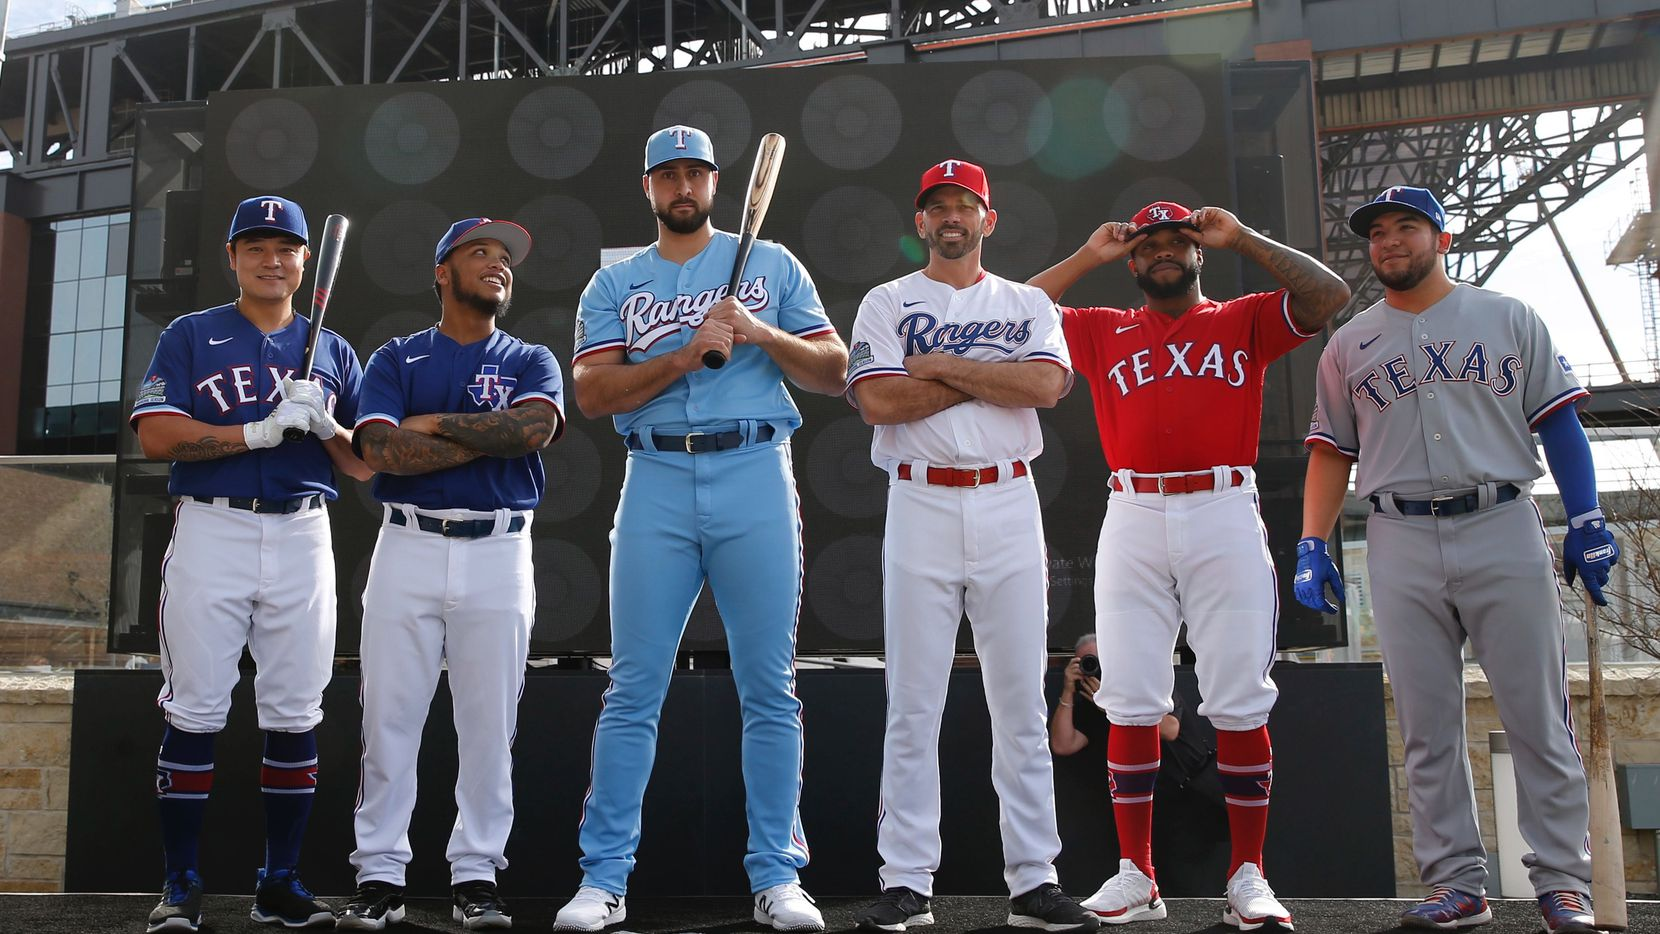 Texas Rangers Shin-Soo Choo, Willie Calhoun, Joey Gallo, Chris Woodward, Delino DeShields and Jose Trevino on stage during the unveiling of the 2020 uniforms at Live! next to Globe Life Field in Arlington, Texas on Wednesday, December 4, 2019.